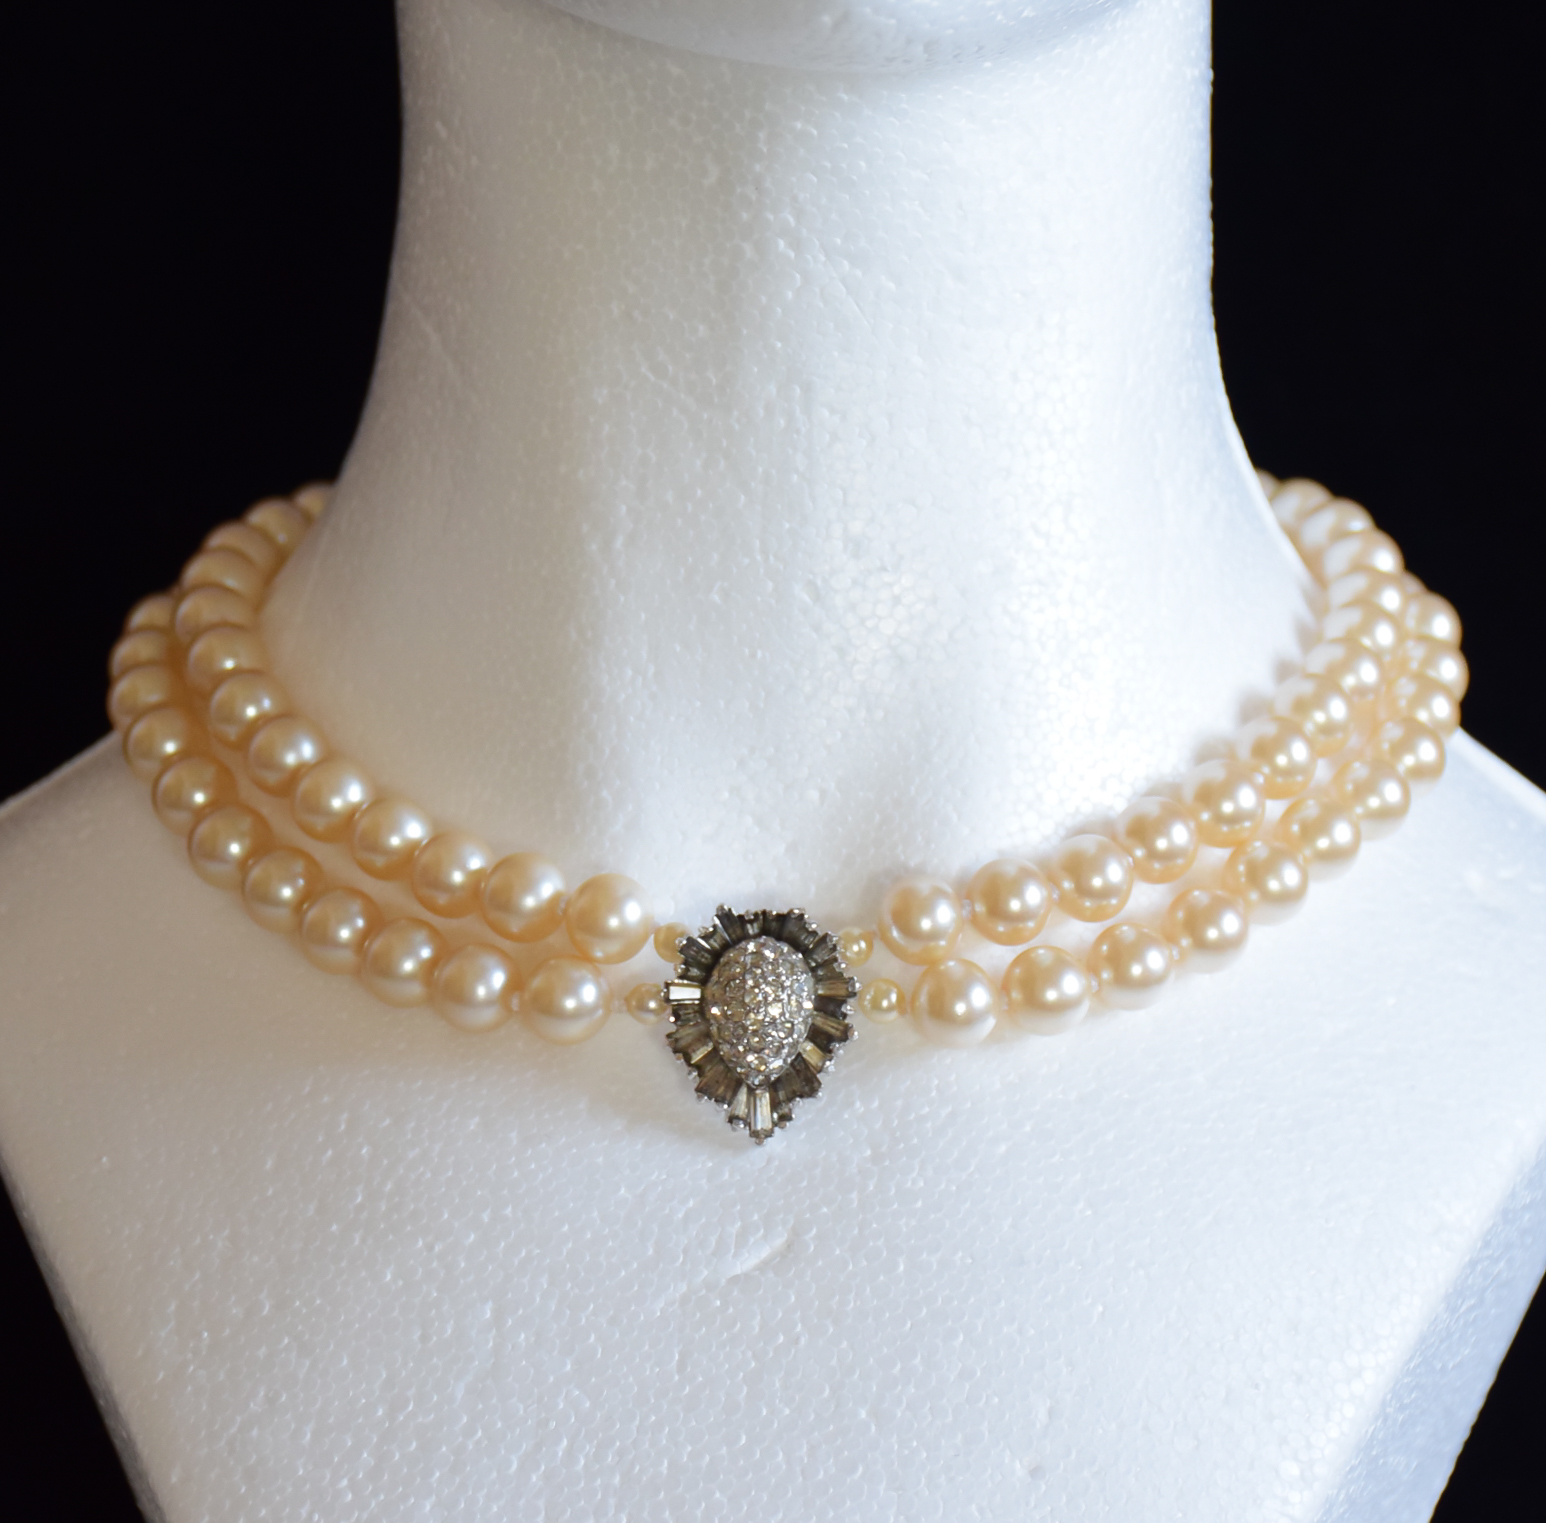 black seven products hestia jewels necklace pearl jewellery harmony